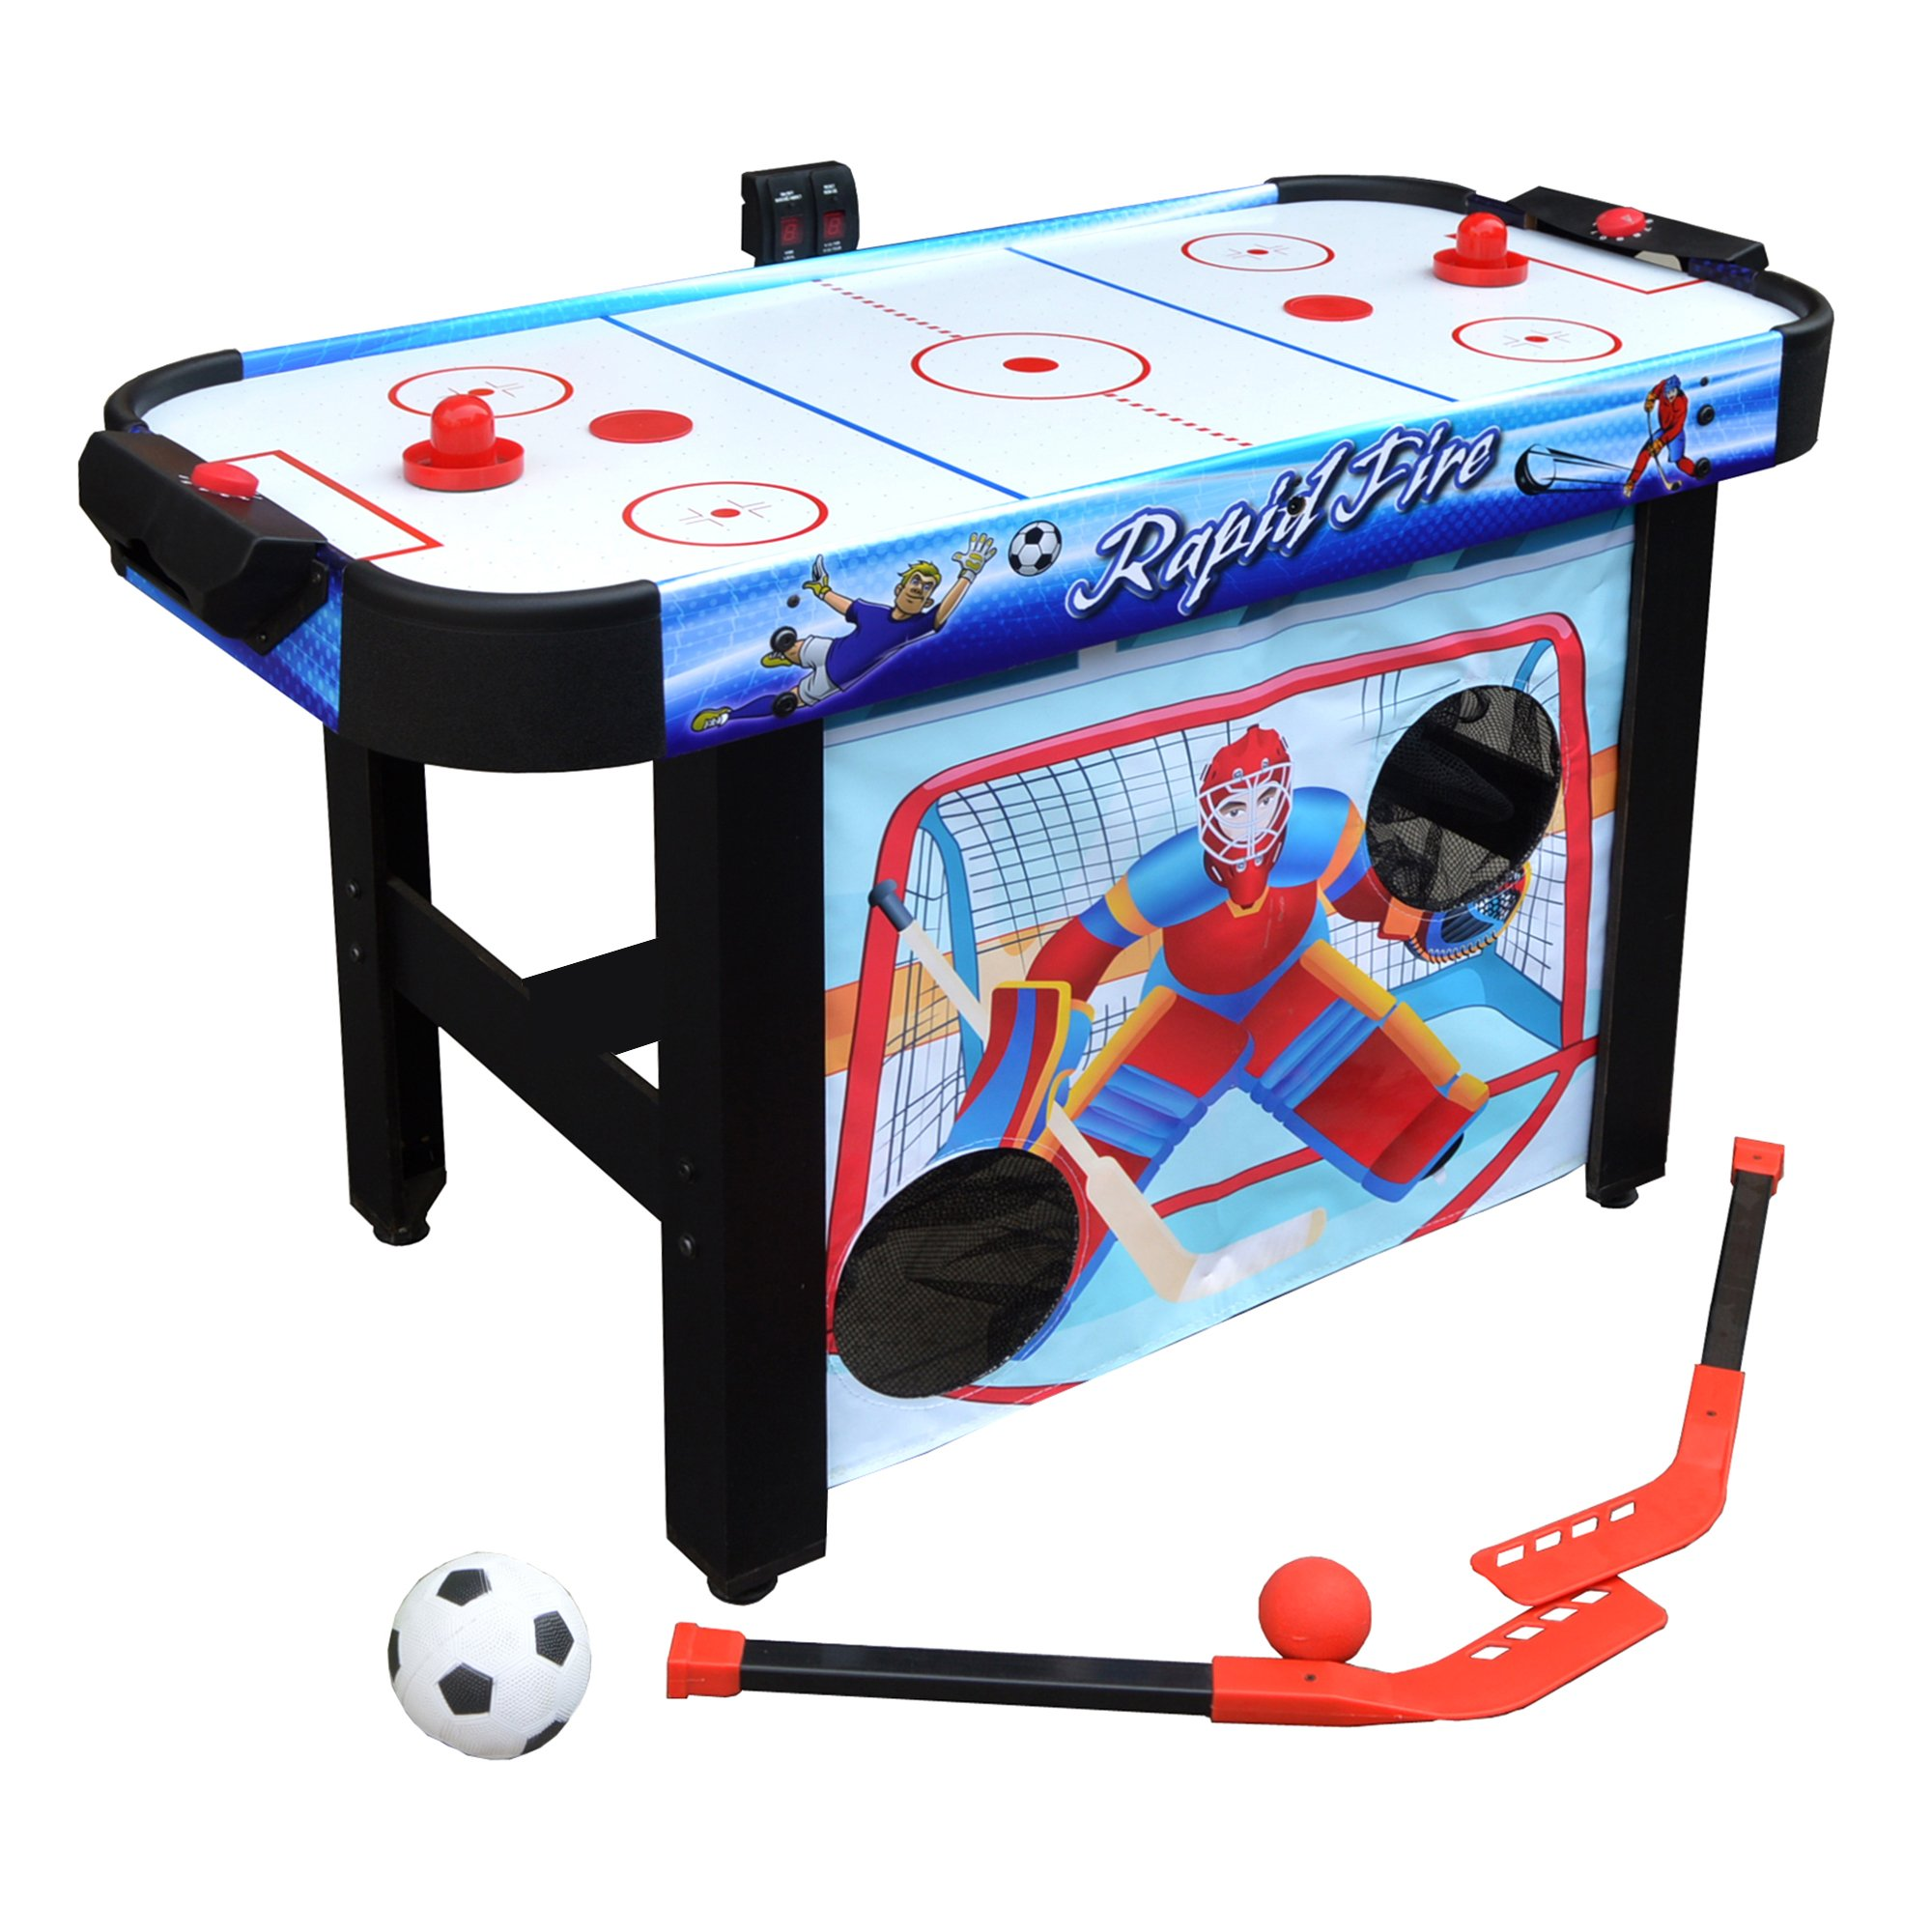 Hathaway Rapid Fire 42-in 3-in-1 Air Hockey Multi-Game Table with Soccer and Hockey Target Nets for Kids by Hathaway